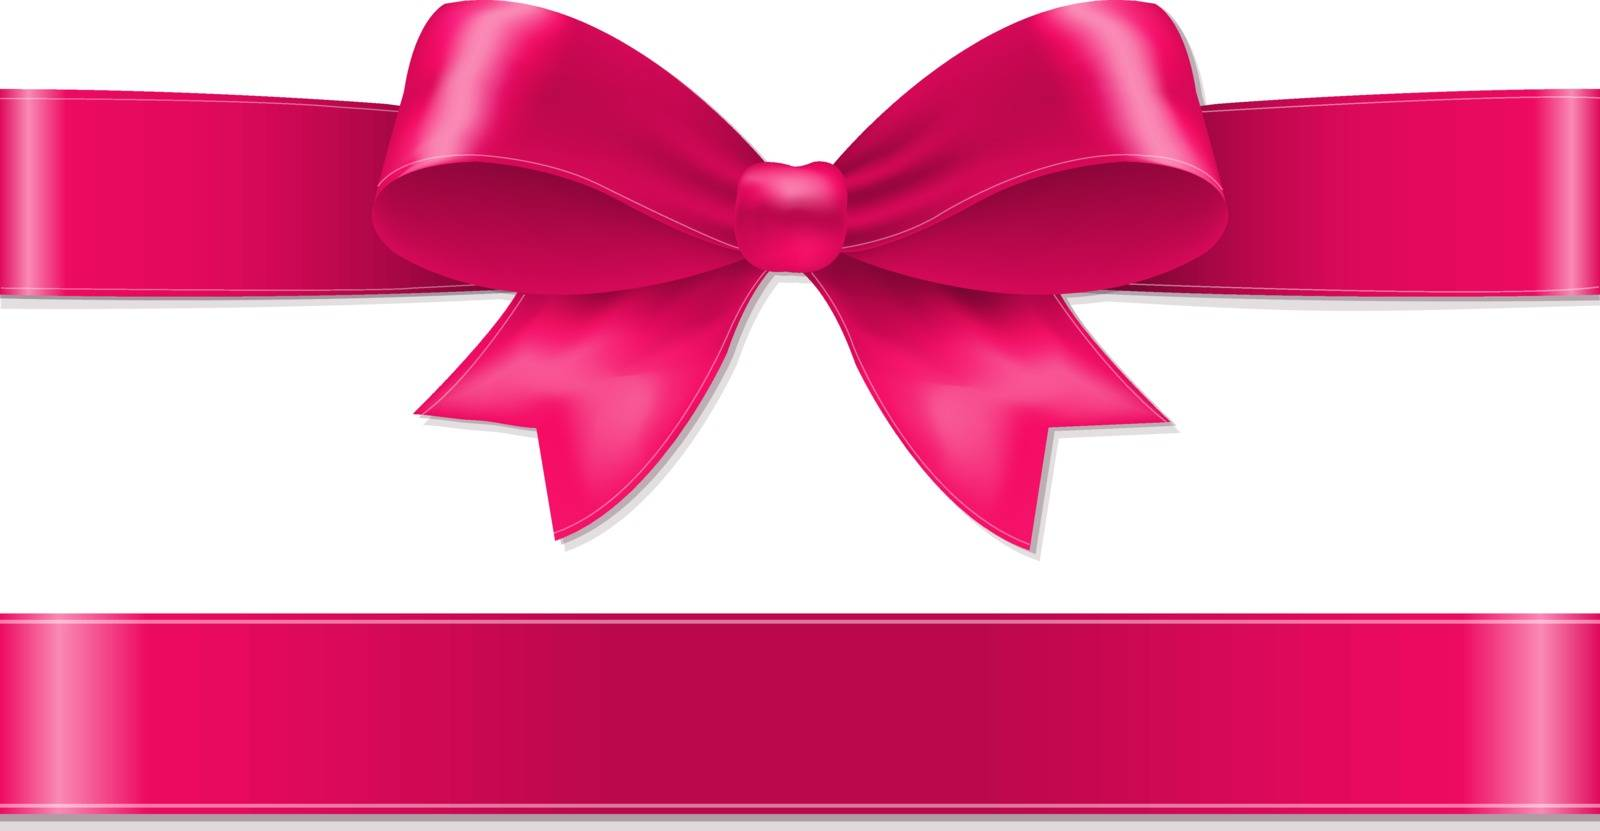 Pink Bow With Gradient Mesh, Vector Illustration